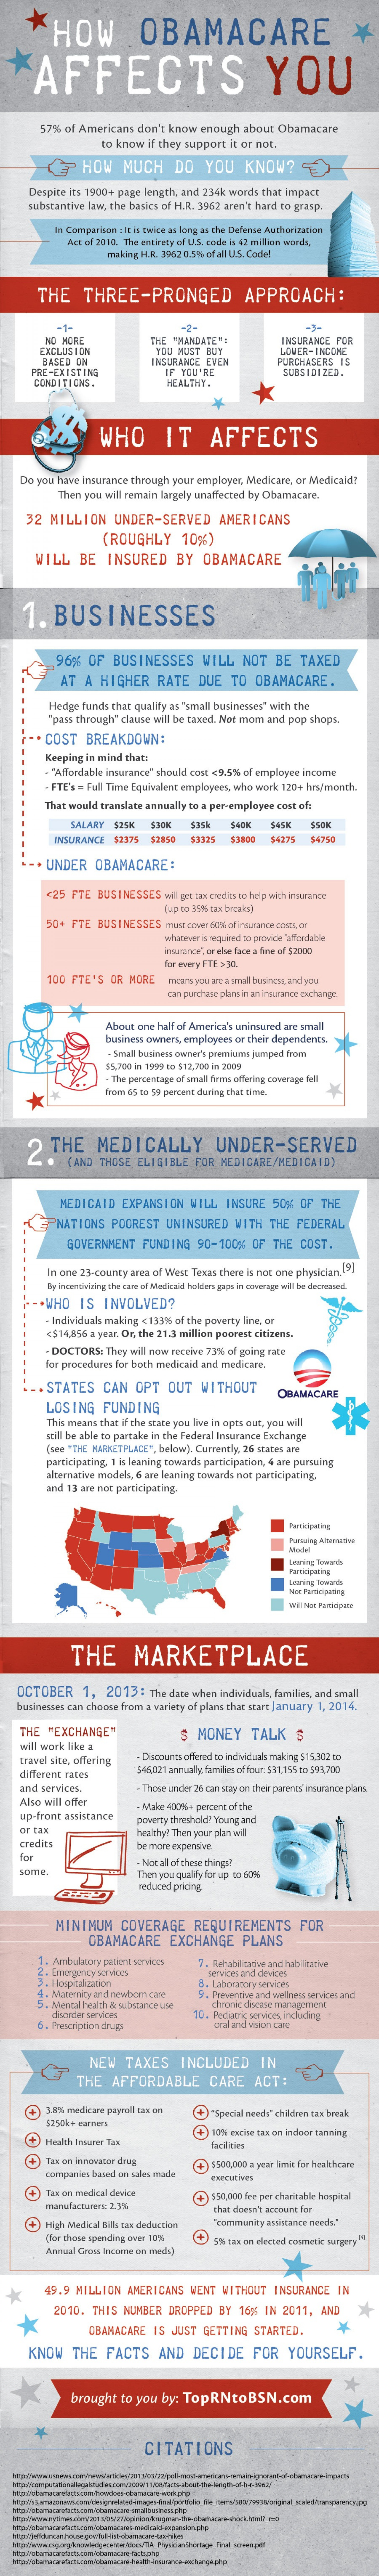 How Obamacare Affects You Infographic